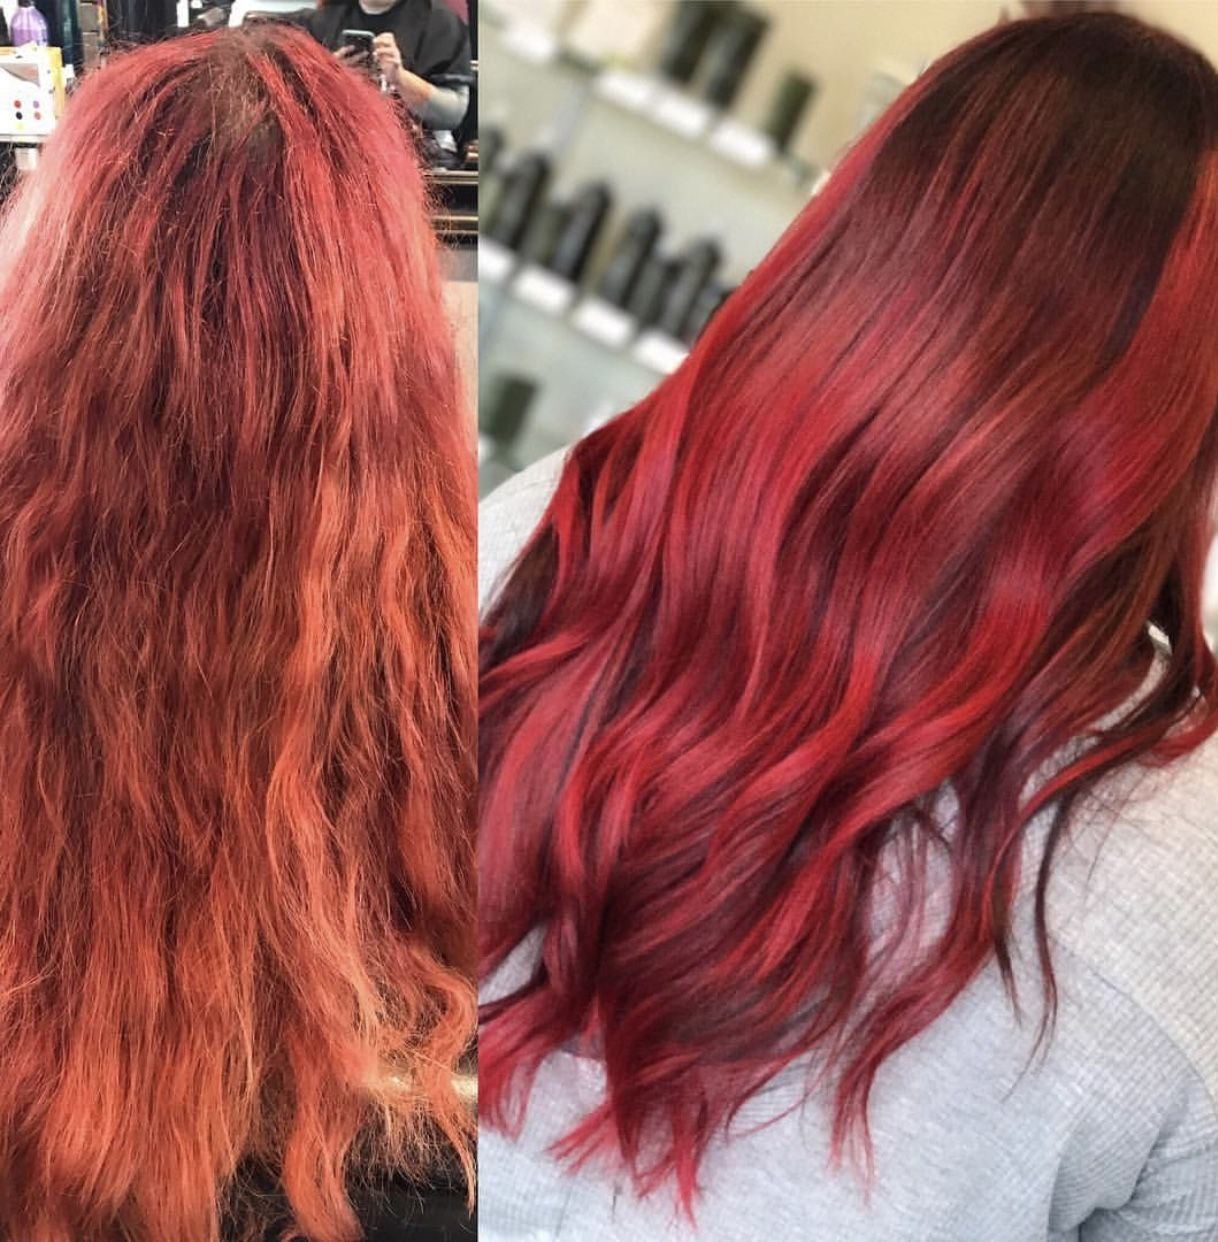 Red Hair Makeover Before And After Hair Color Long Hair Bright Red Hair Hair Makeover Long Hair Styles Bright Red Hair